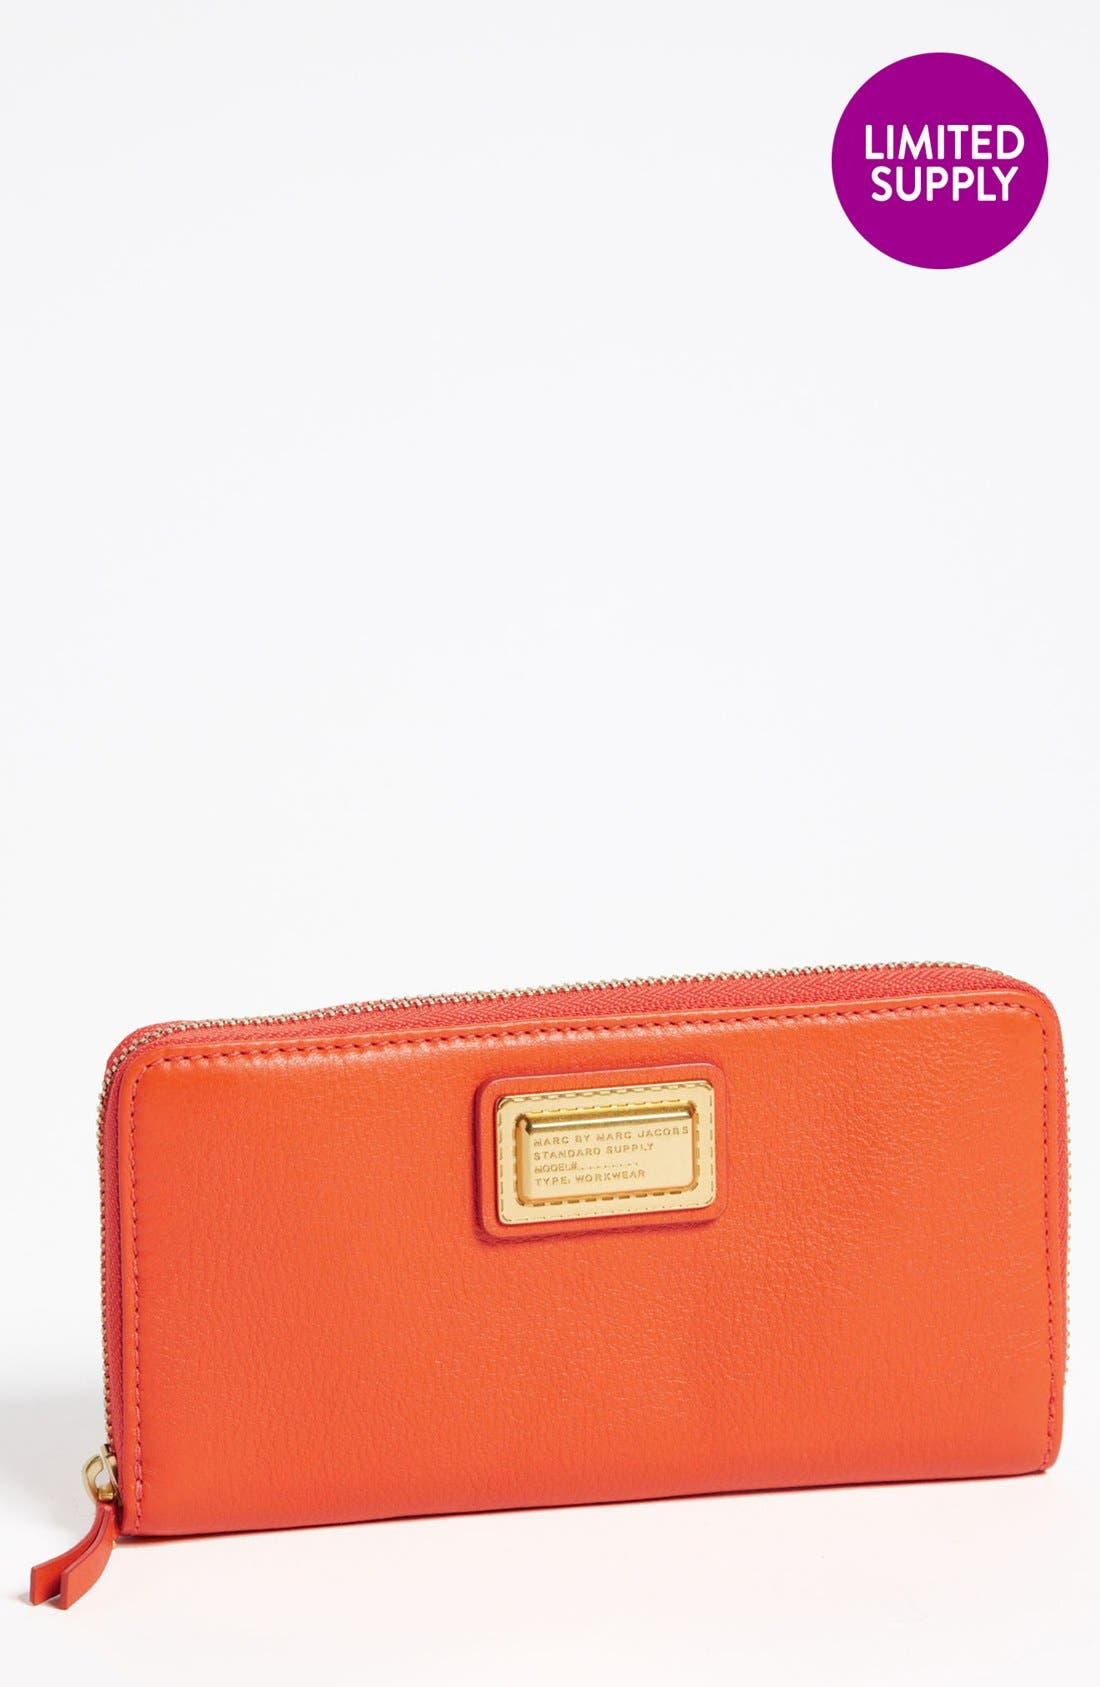 Alternate Image 1 Selected - MARC BY MARC JACOBS 'Vertical Zippy' Leather Wallet